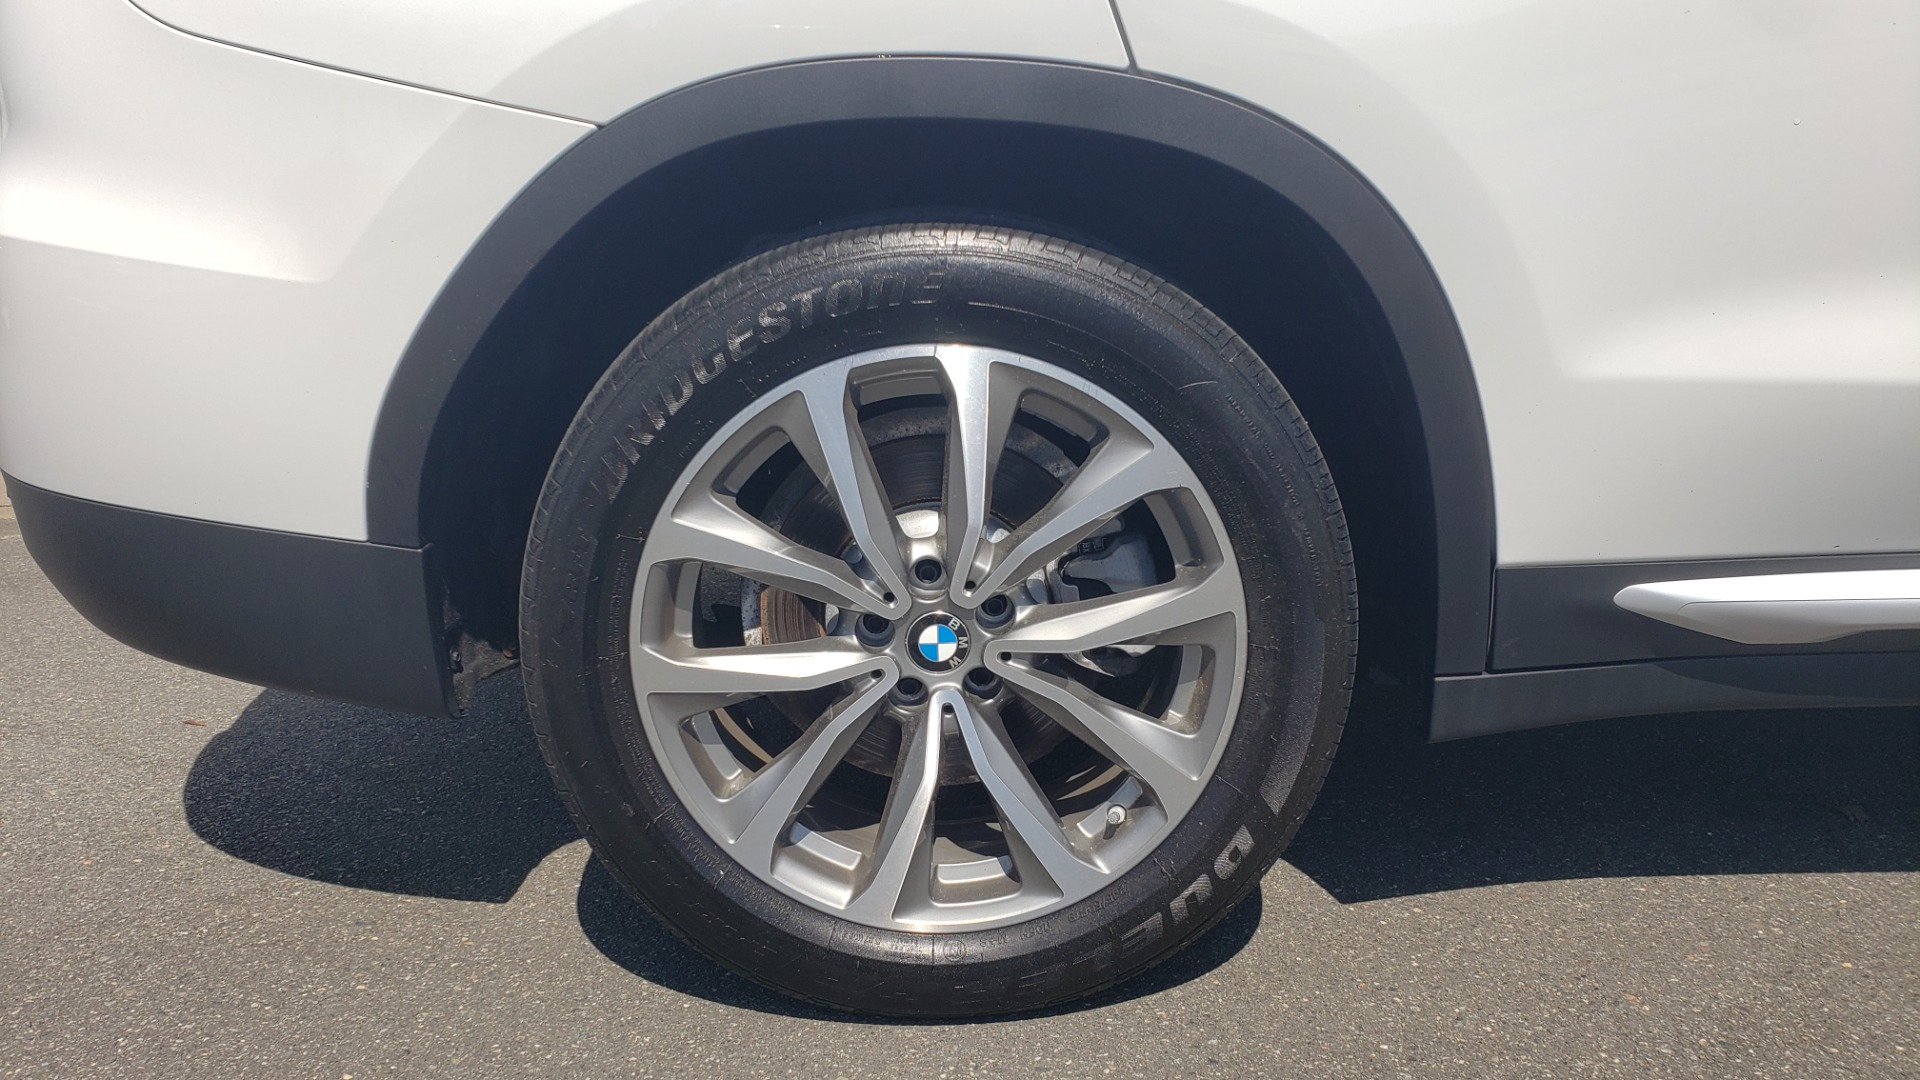 Used 2018 BMW X3 XDRIVE30I / CONV PKG / PANO-ROOF / HTD STS / REARVIEW for sale $33,995 at Formula Imports in Charlotte NC 28227 80